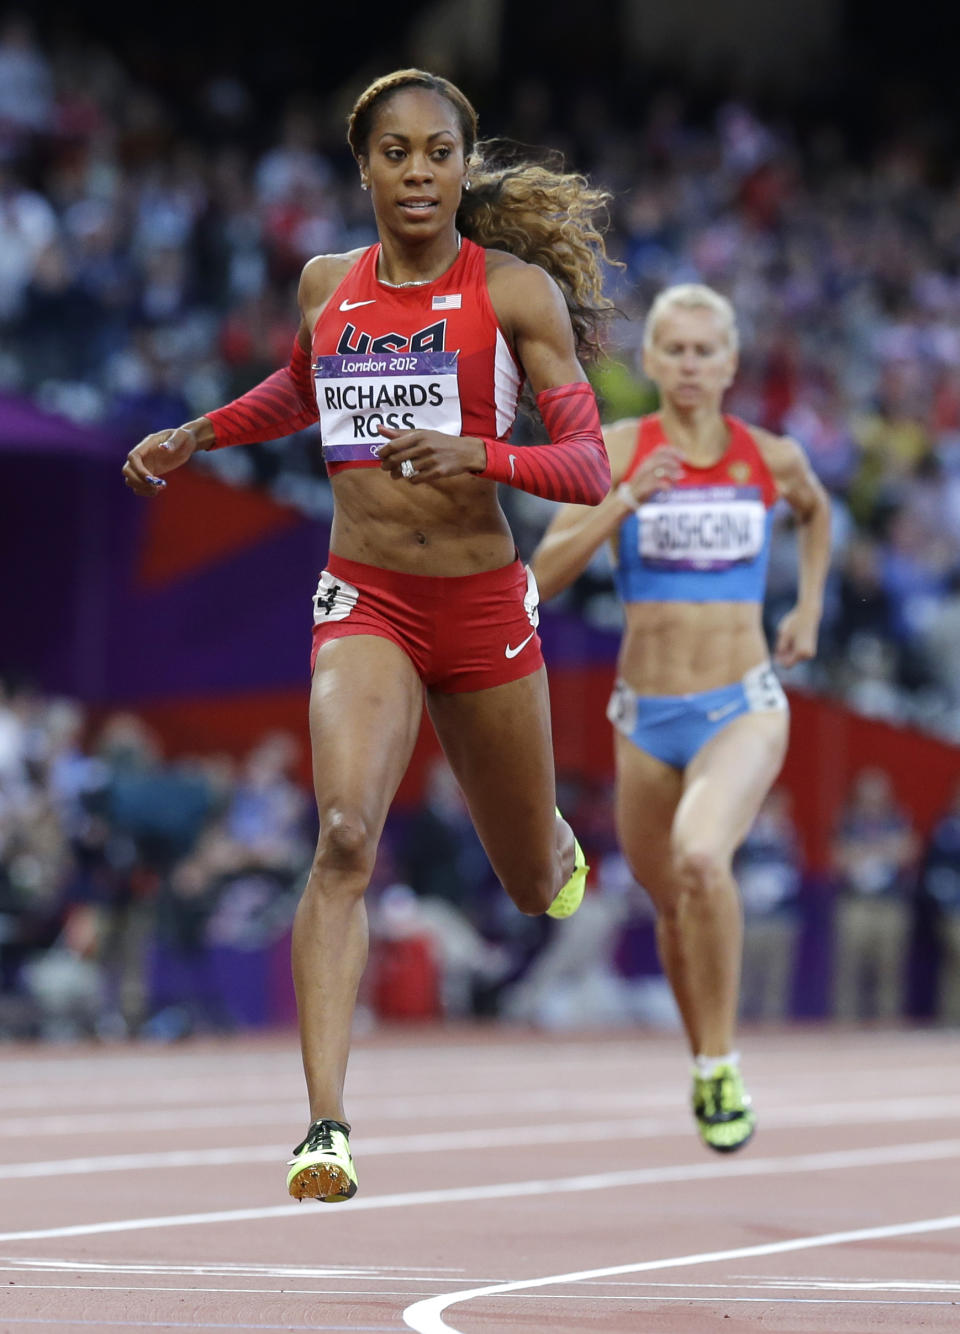 The Jamaican born track and field sensation is already taken by Aaron Ross of the Jacksonville jaguars. However, this beauty is still turning heads representing the United States in the women's 400-meter at the 2012 Summer Olympics, London. (AP Photo/Anja Niedringhaus)